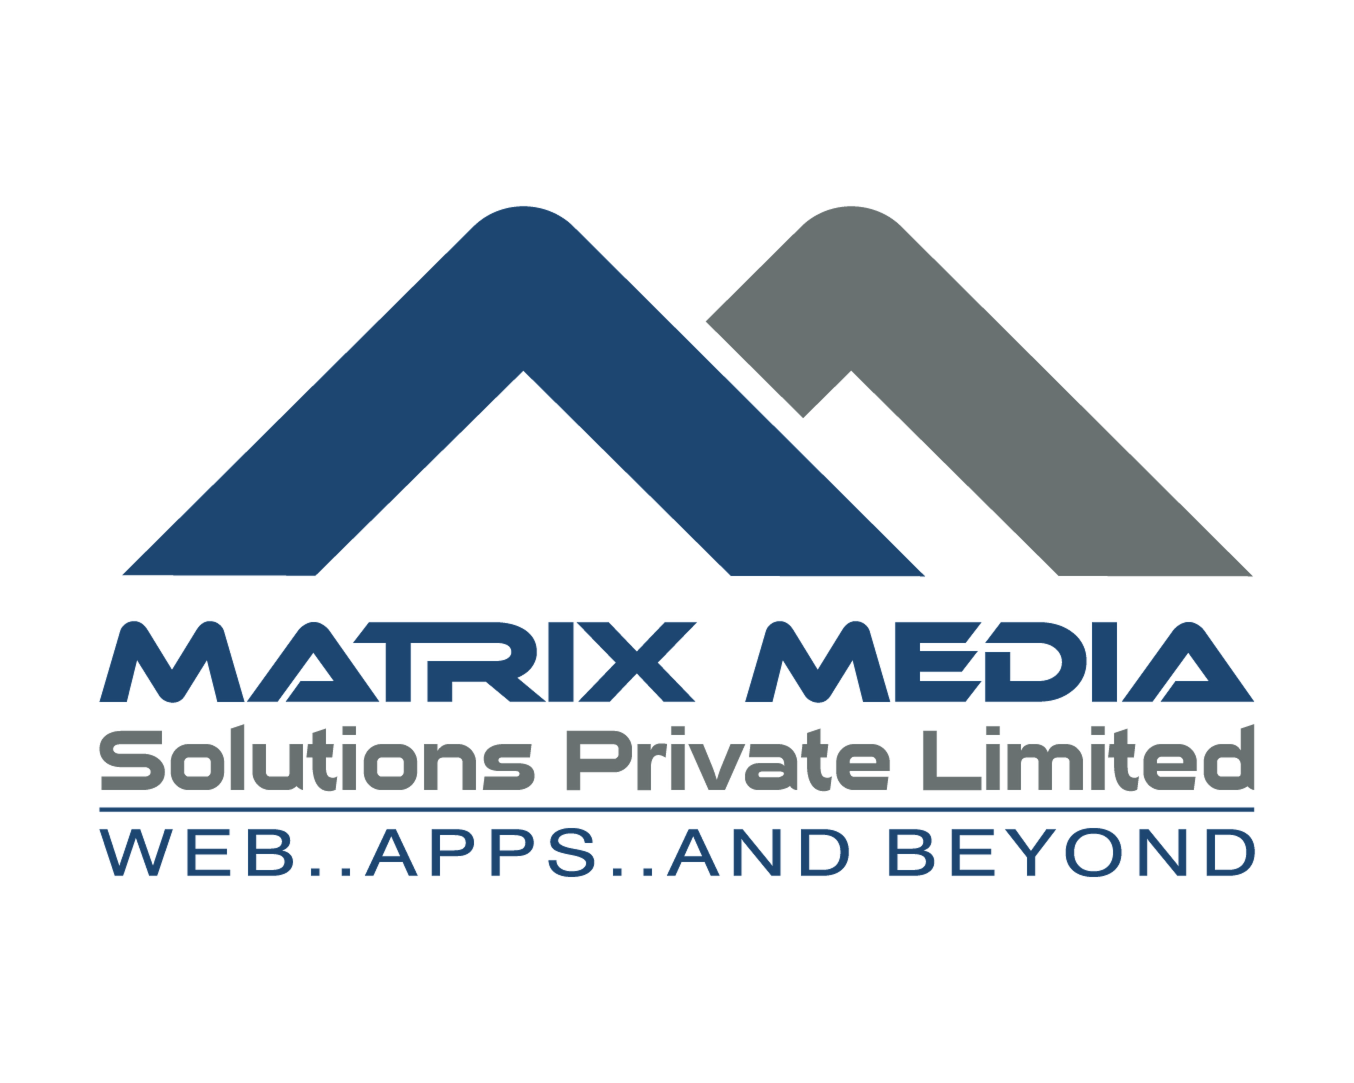 Matrix Media Solutions Pvt. Ltd.